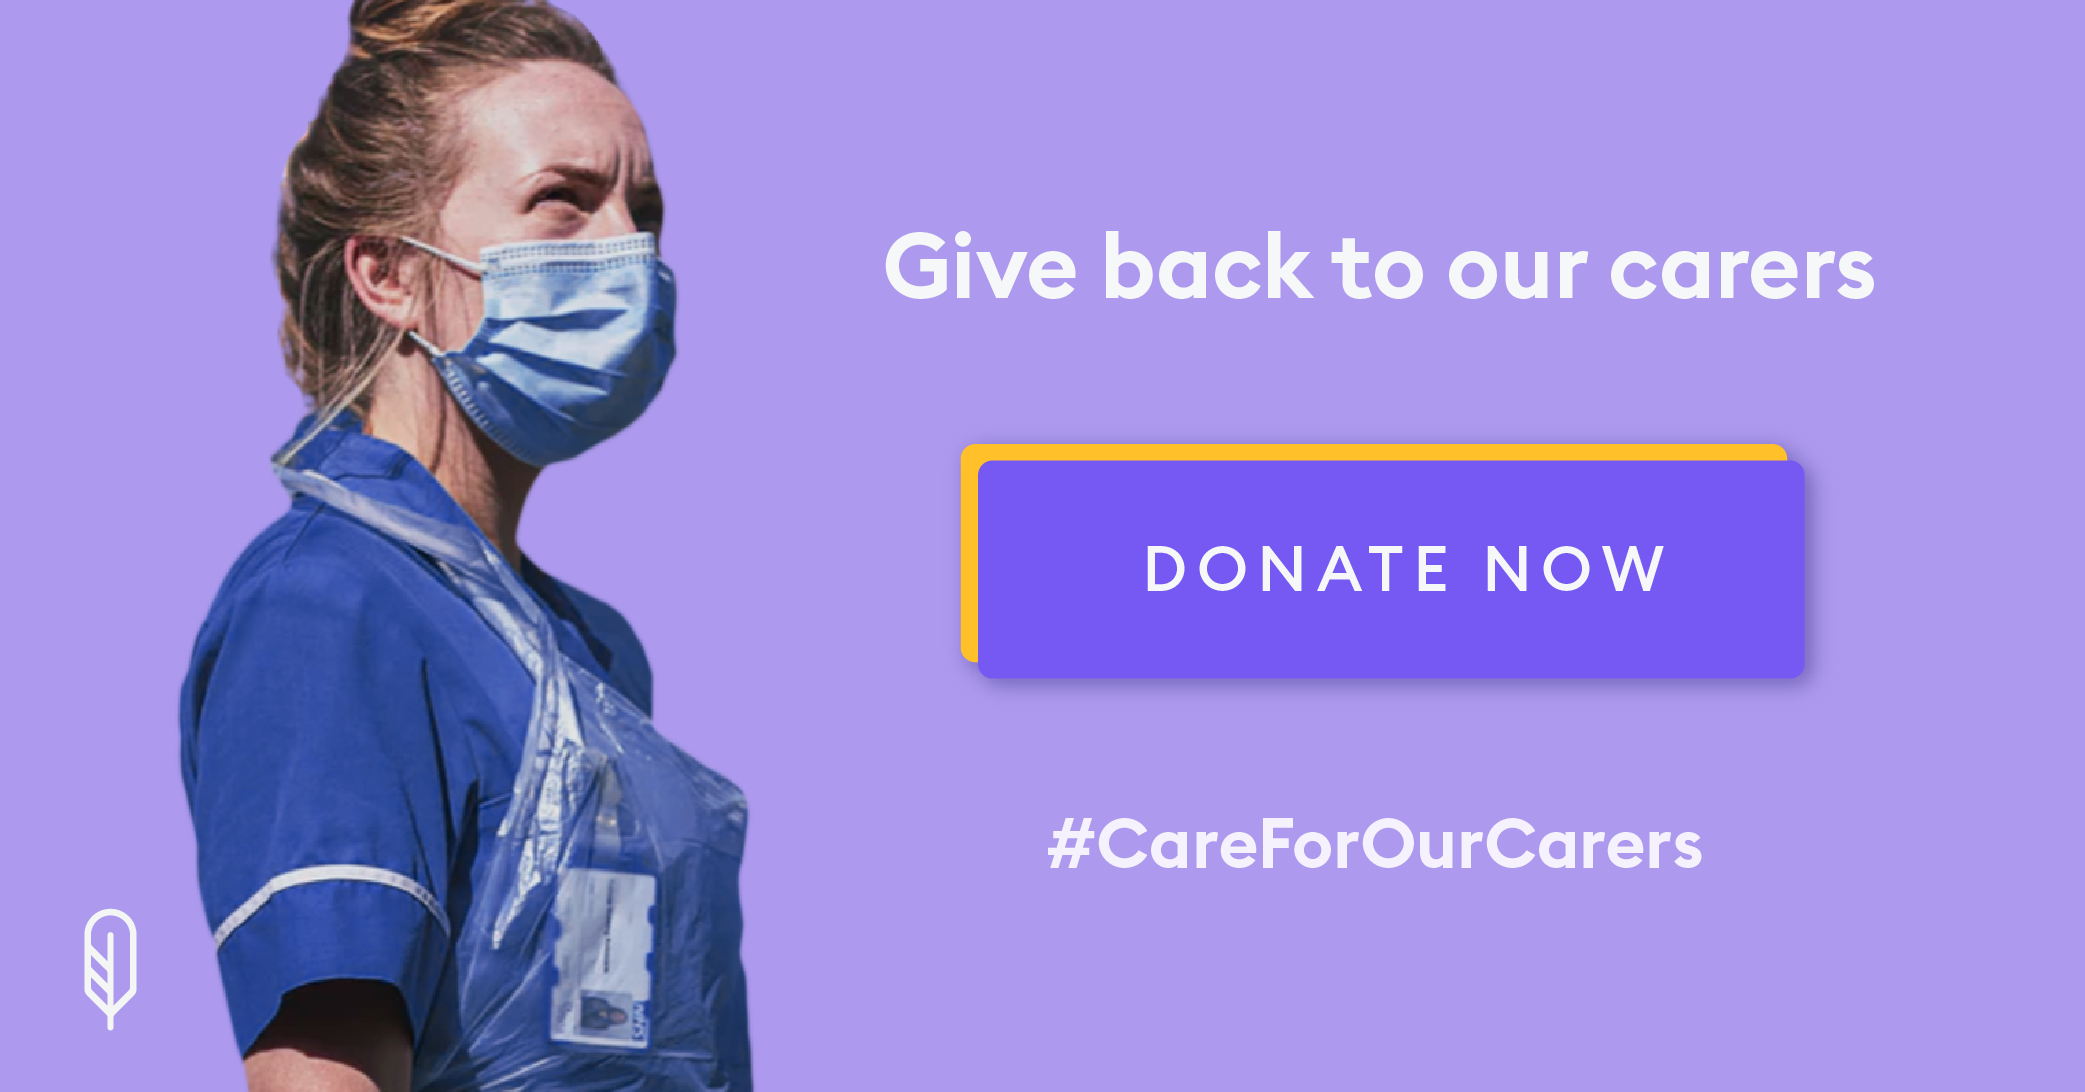 Care for our carers donations